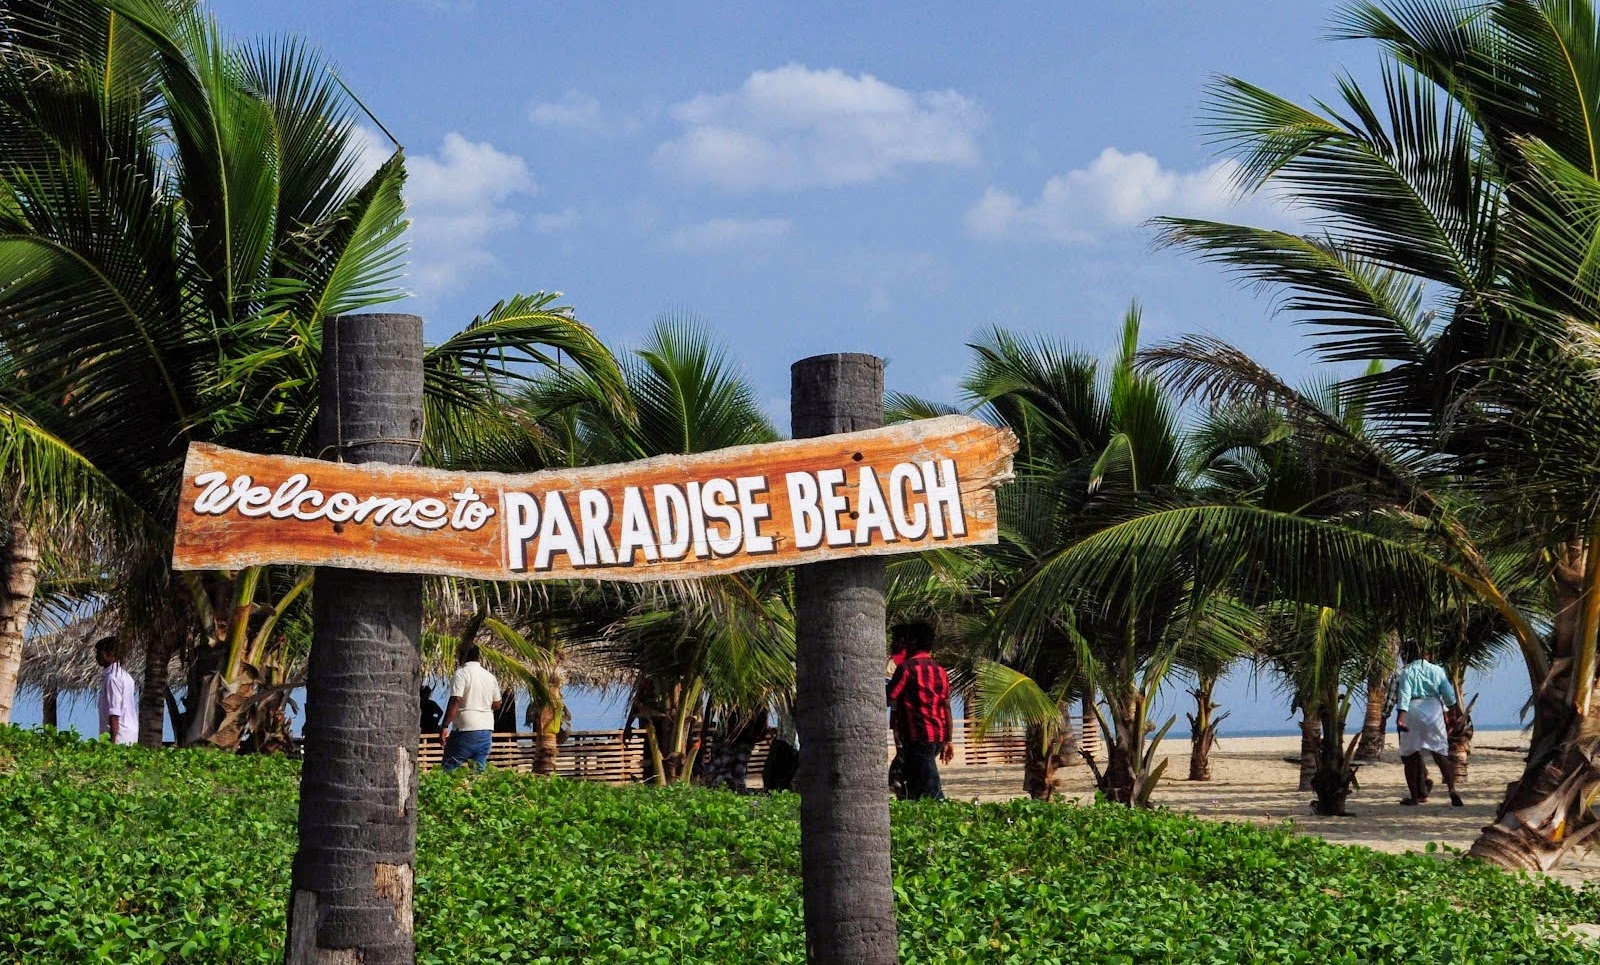 After Lunch Nap At Hotel We Started To Paradise Beach Around 3pm It Is 8km From The Pondicherry Town On Pondy Cuddalore Highway